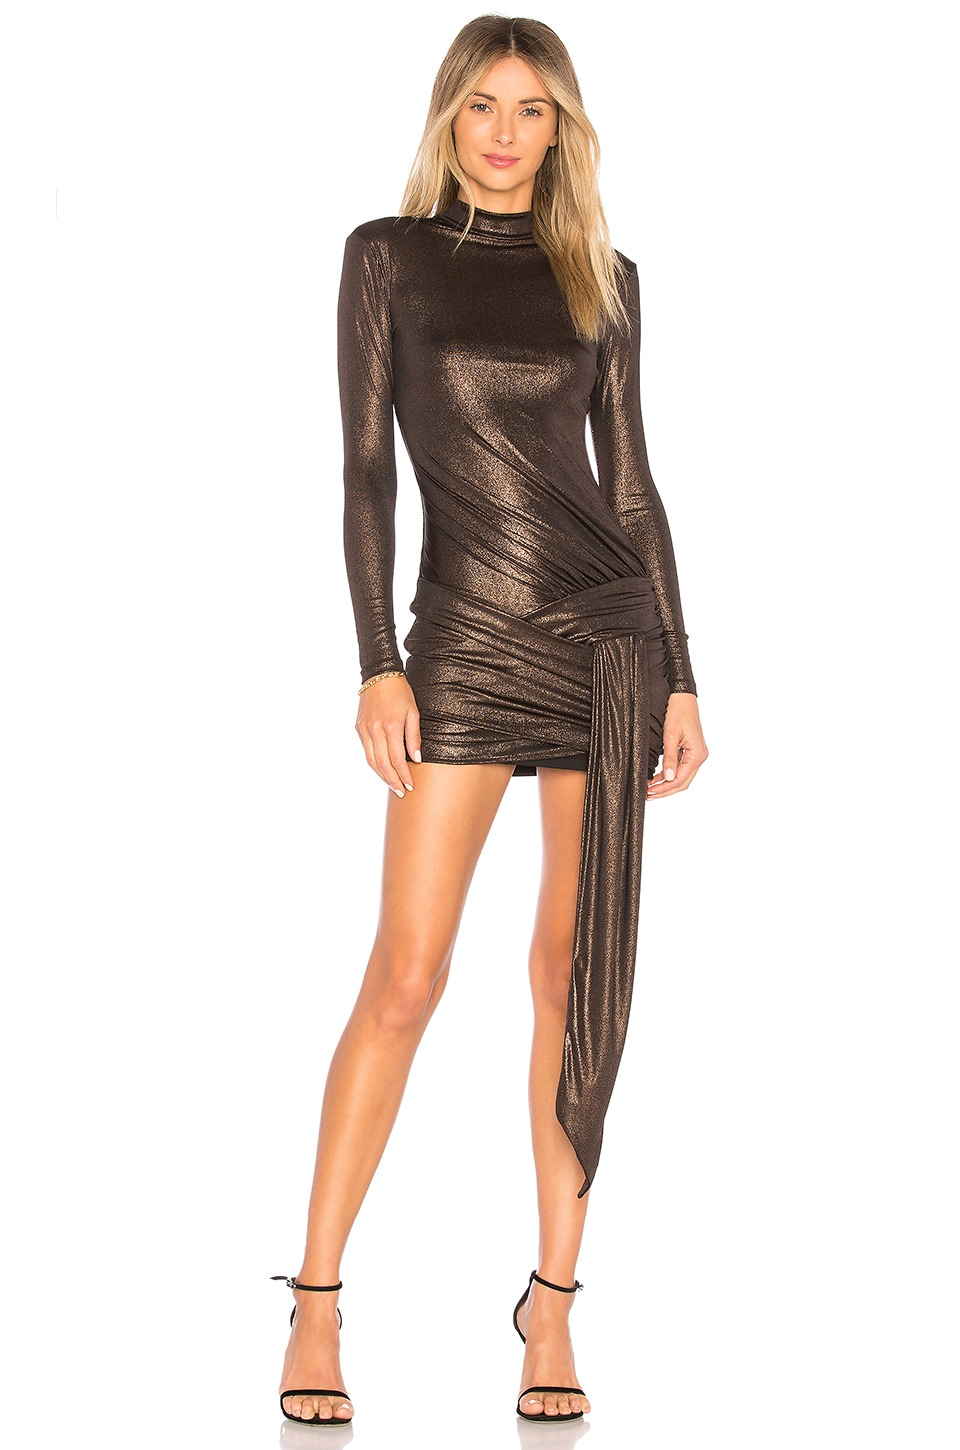 h:ours Luna Dress in Copper